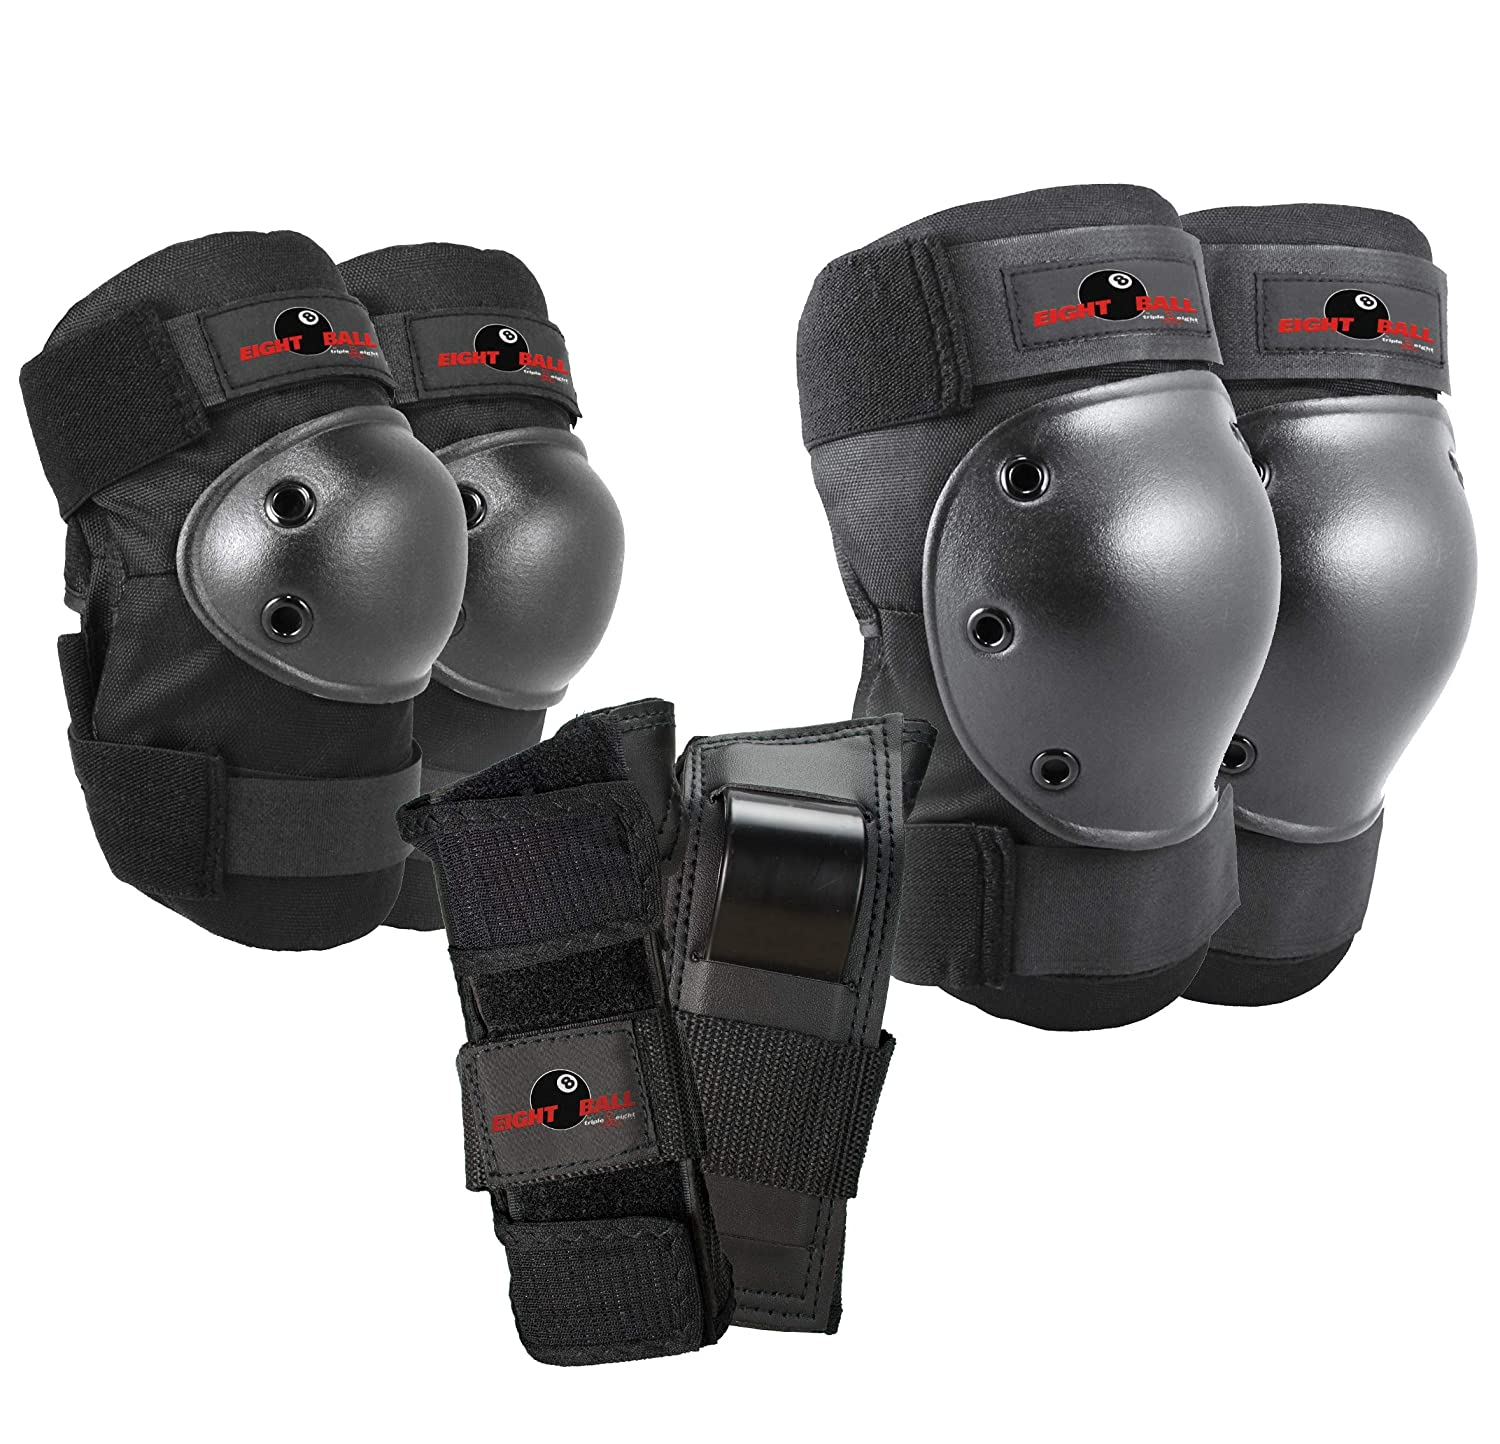 Eight Ball Kids Multi-Sport Pad Set with Wristguards, Elbow Pads, and Knee Pads